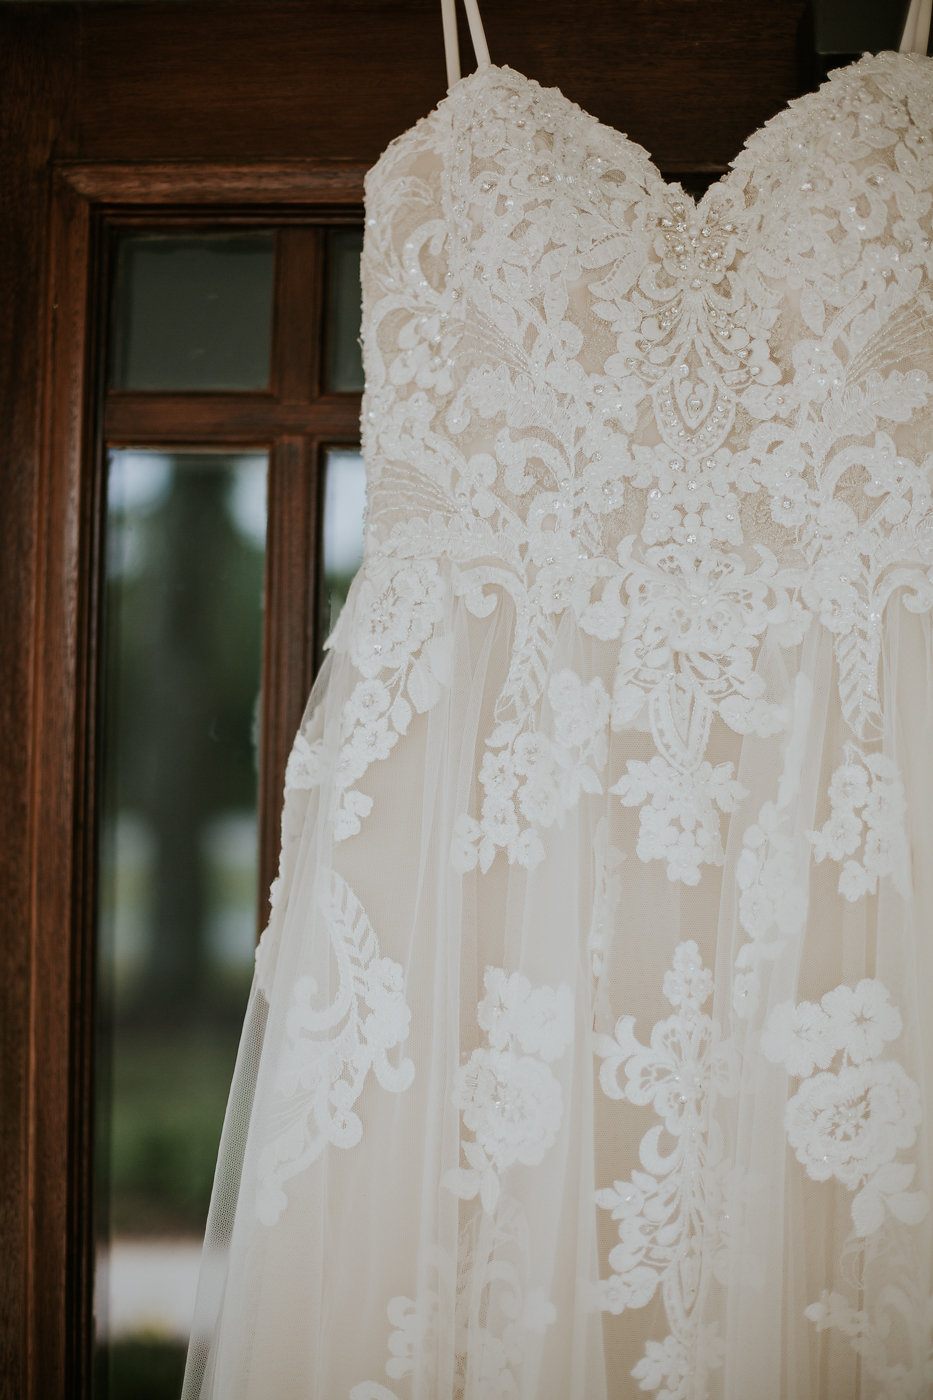 Beaded Embroidered Wedding Dress - North Carolina Wedding Venue - Triple J Manor House Wedding